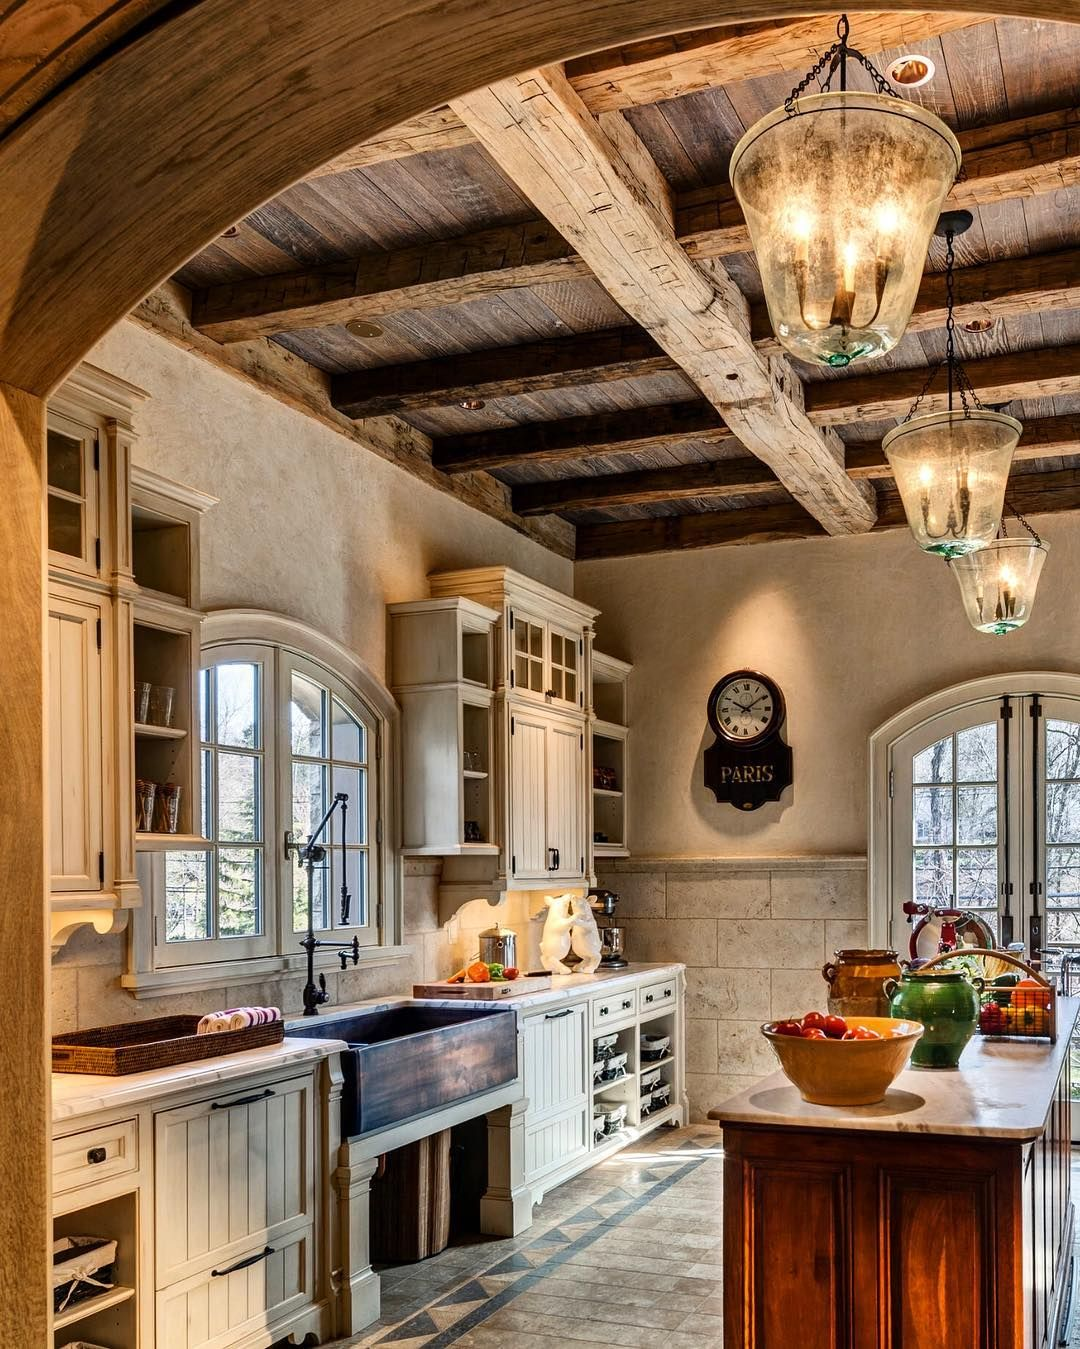 Country Kitchen Accessories: Cottage Kitchens, Home Decor